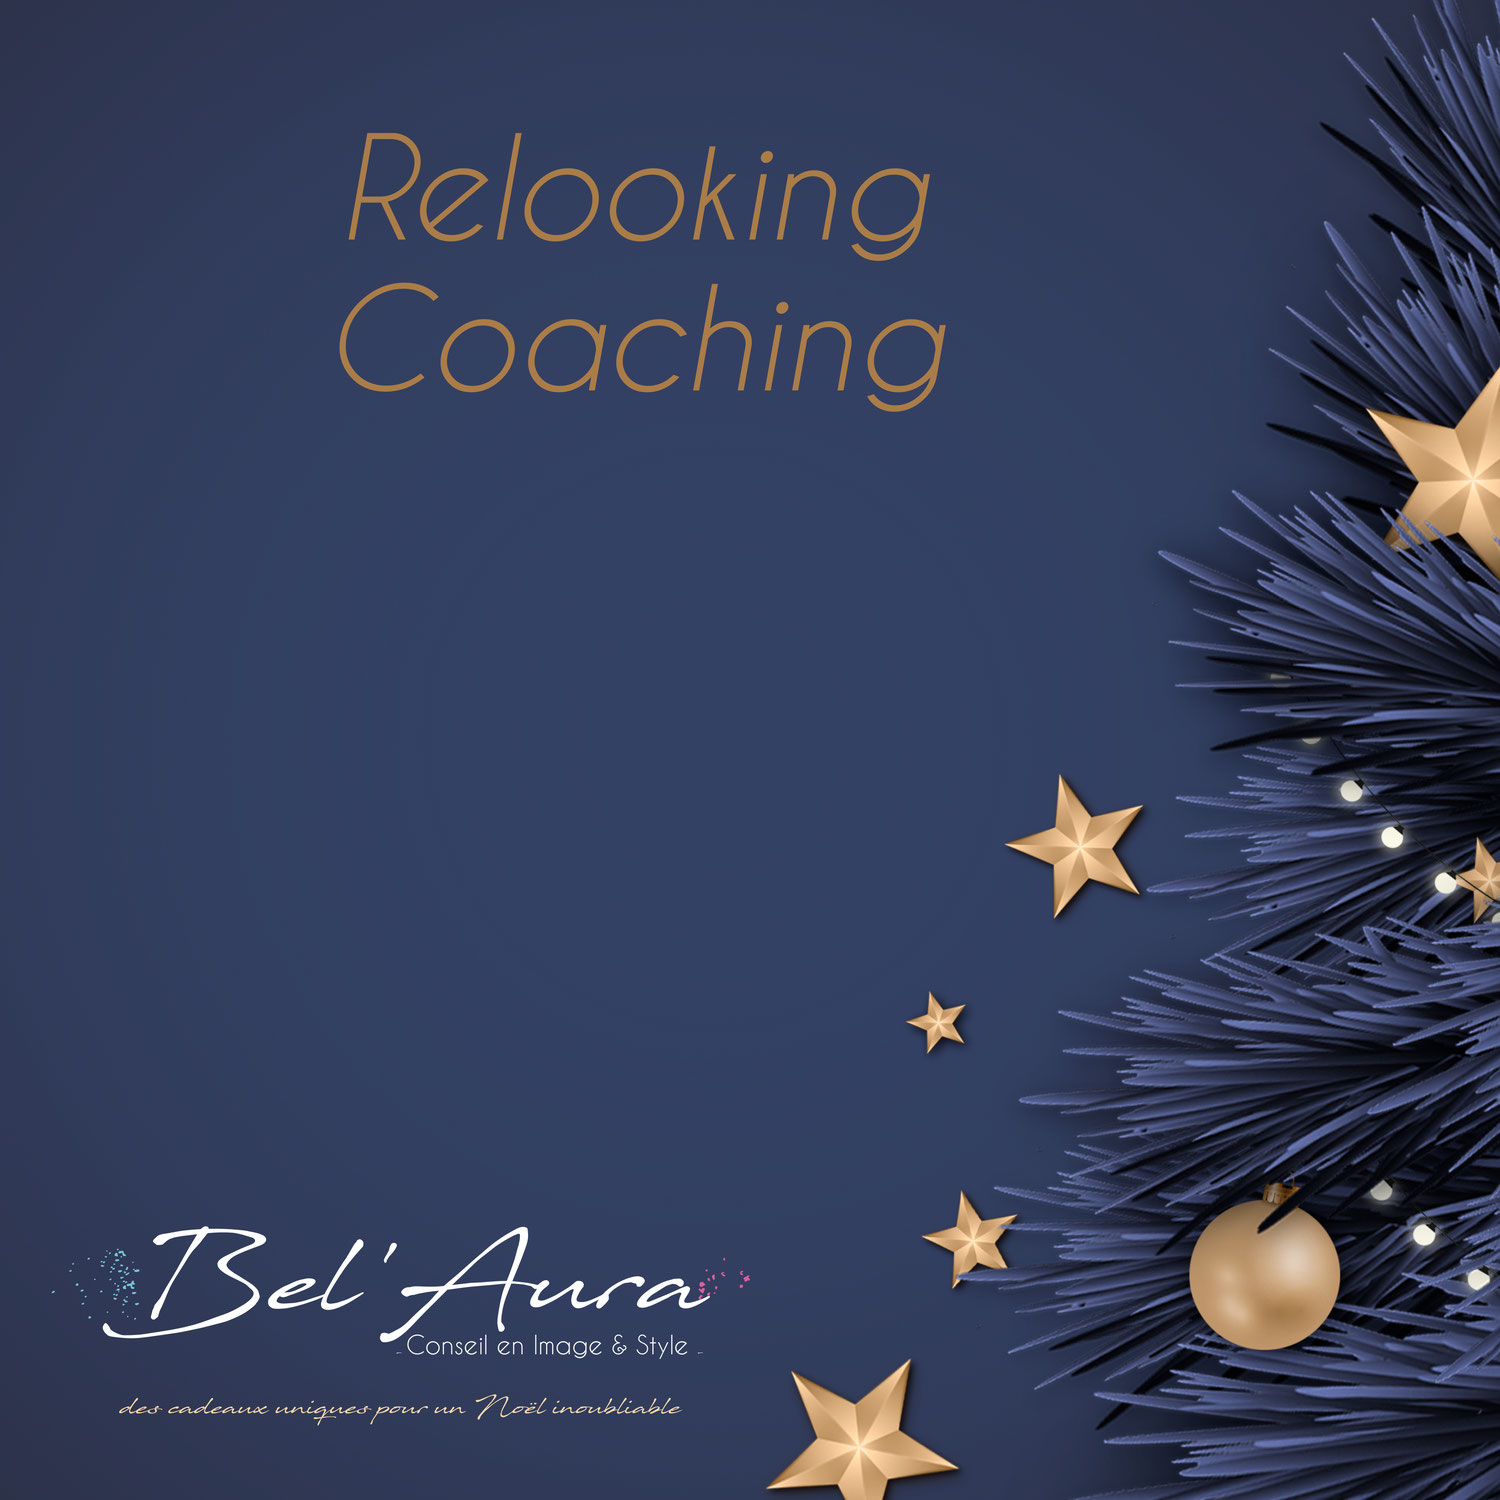 Relooking Coaching